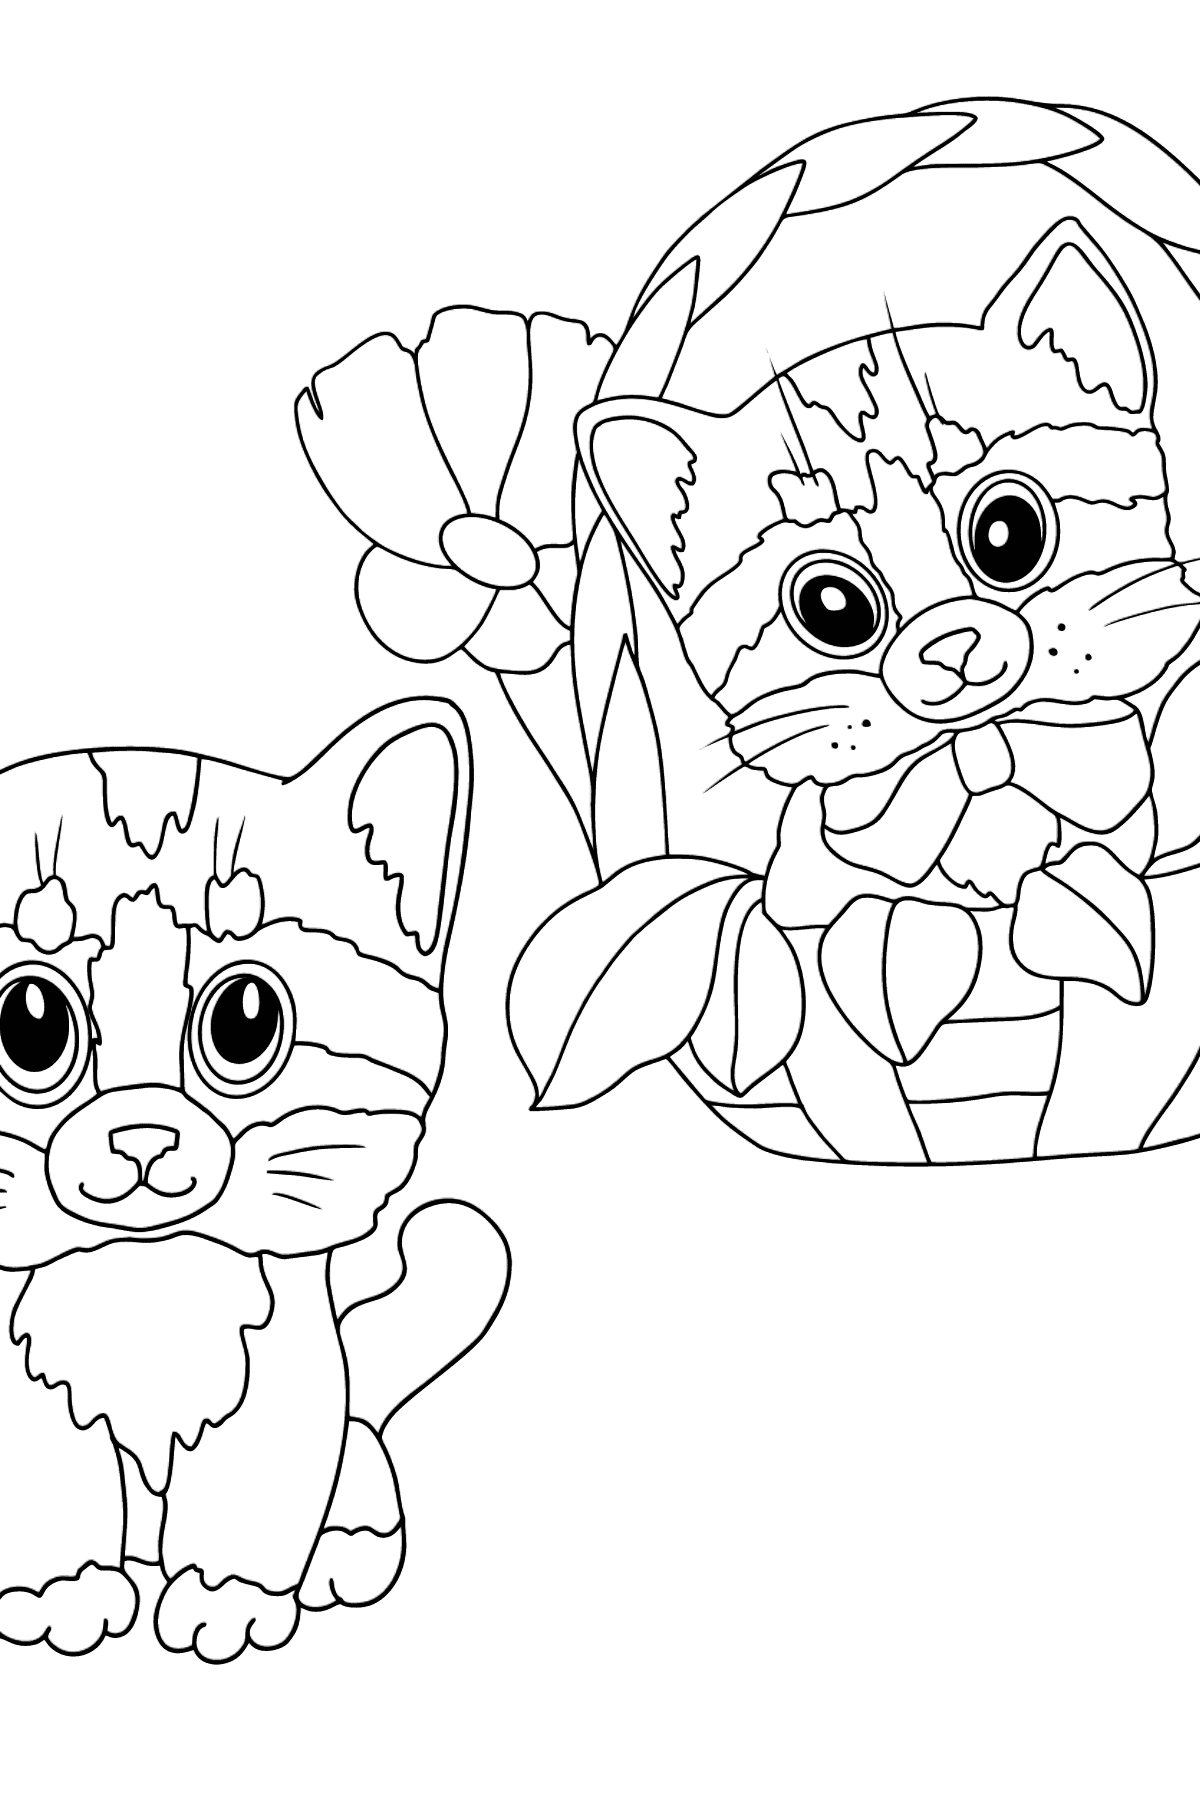 Coloring Page - Kittens are Looking Around Cautiously - Coloring Pages for Kids